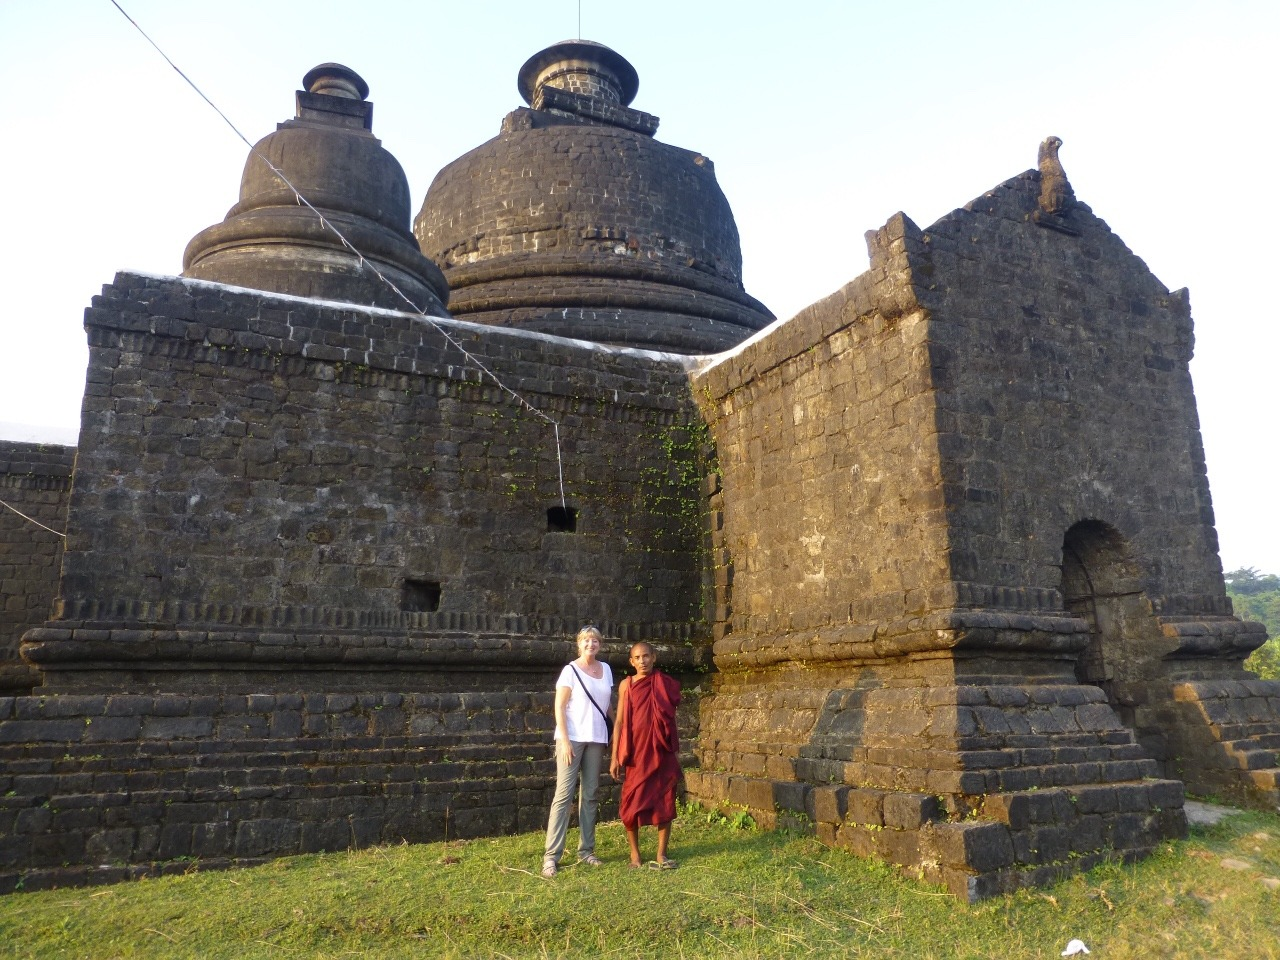 7.1477520383.me-and-a-monk-in-front-of-the-paya